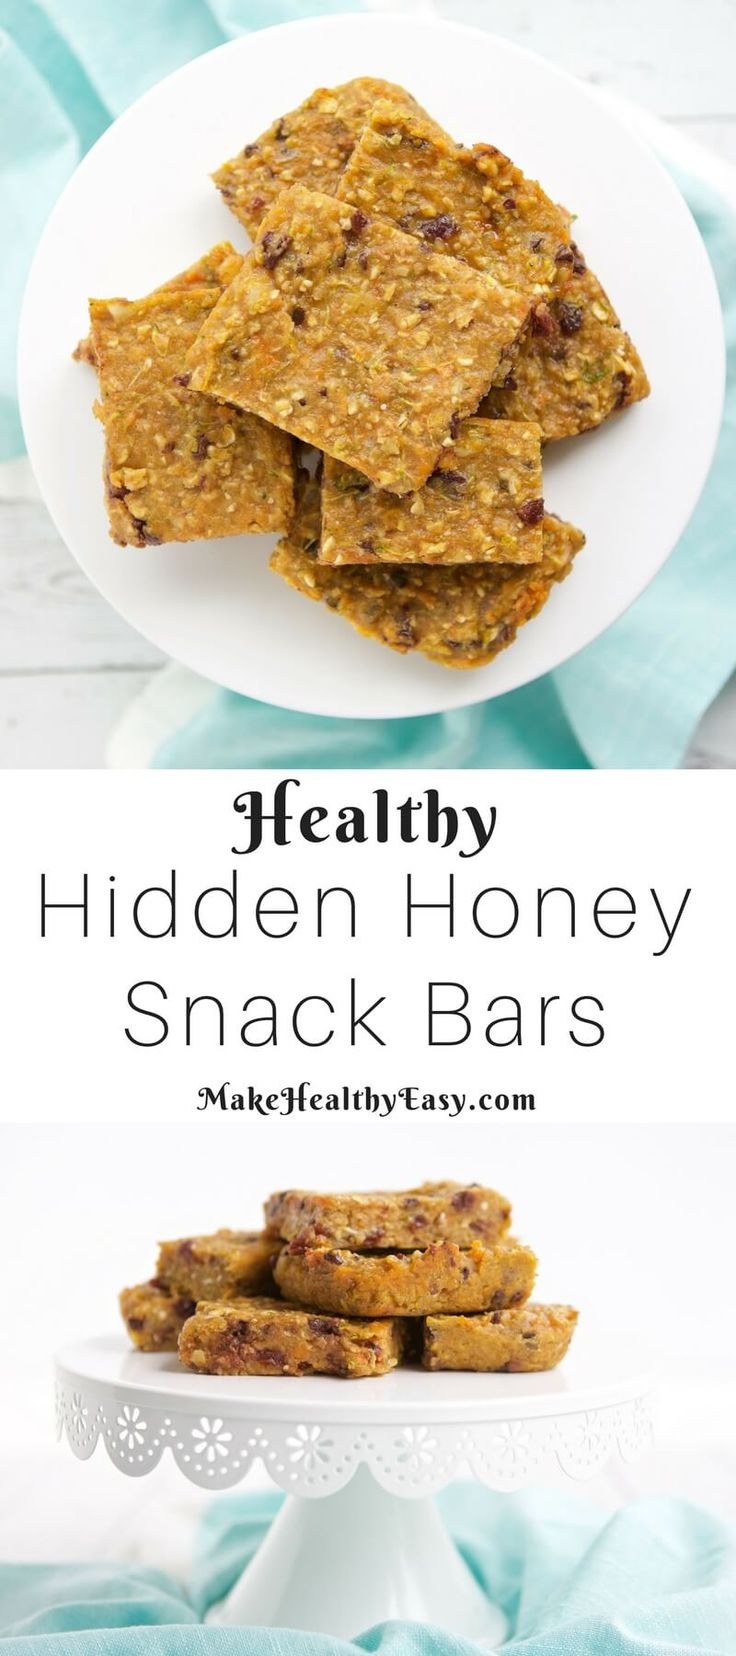 Looking for a homemade snack bar that's yummy and healthy? Try these simple Hidden Honey snack bar recipe made with whole grains, honey, and hidden veggies. They are perfect for kiddos and big people too. ~ http://jennabraddock.com